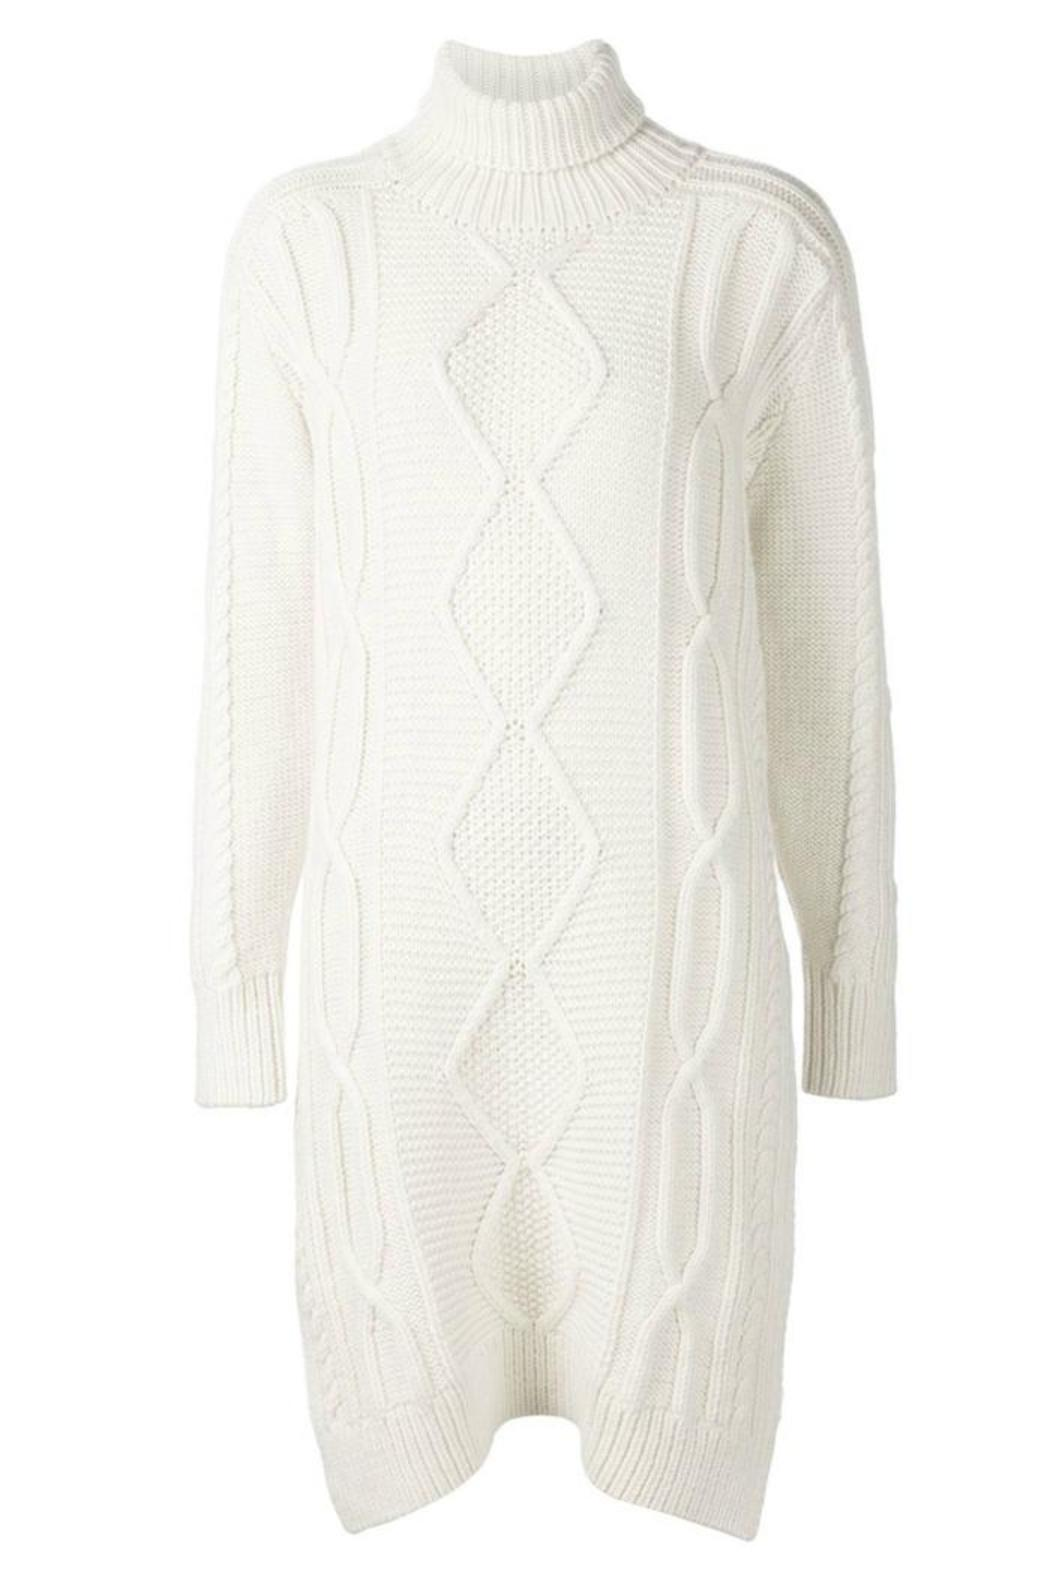 Derek Lam 10 Crosby Turtleneck Sweater Dress - Side Cropped Image